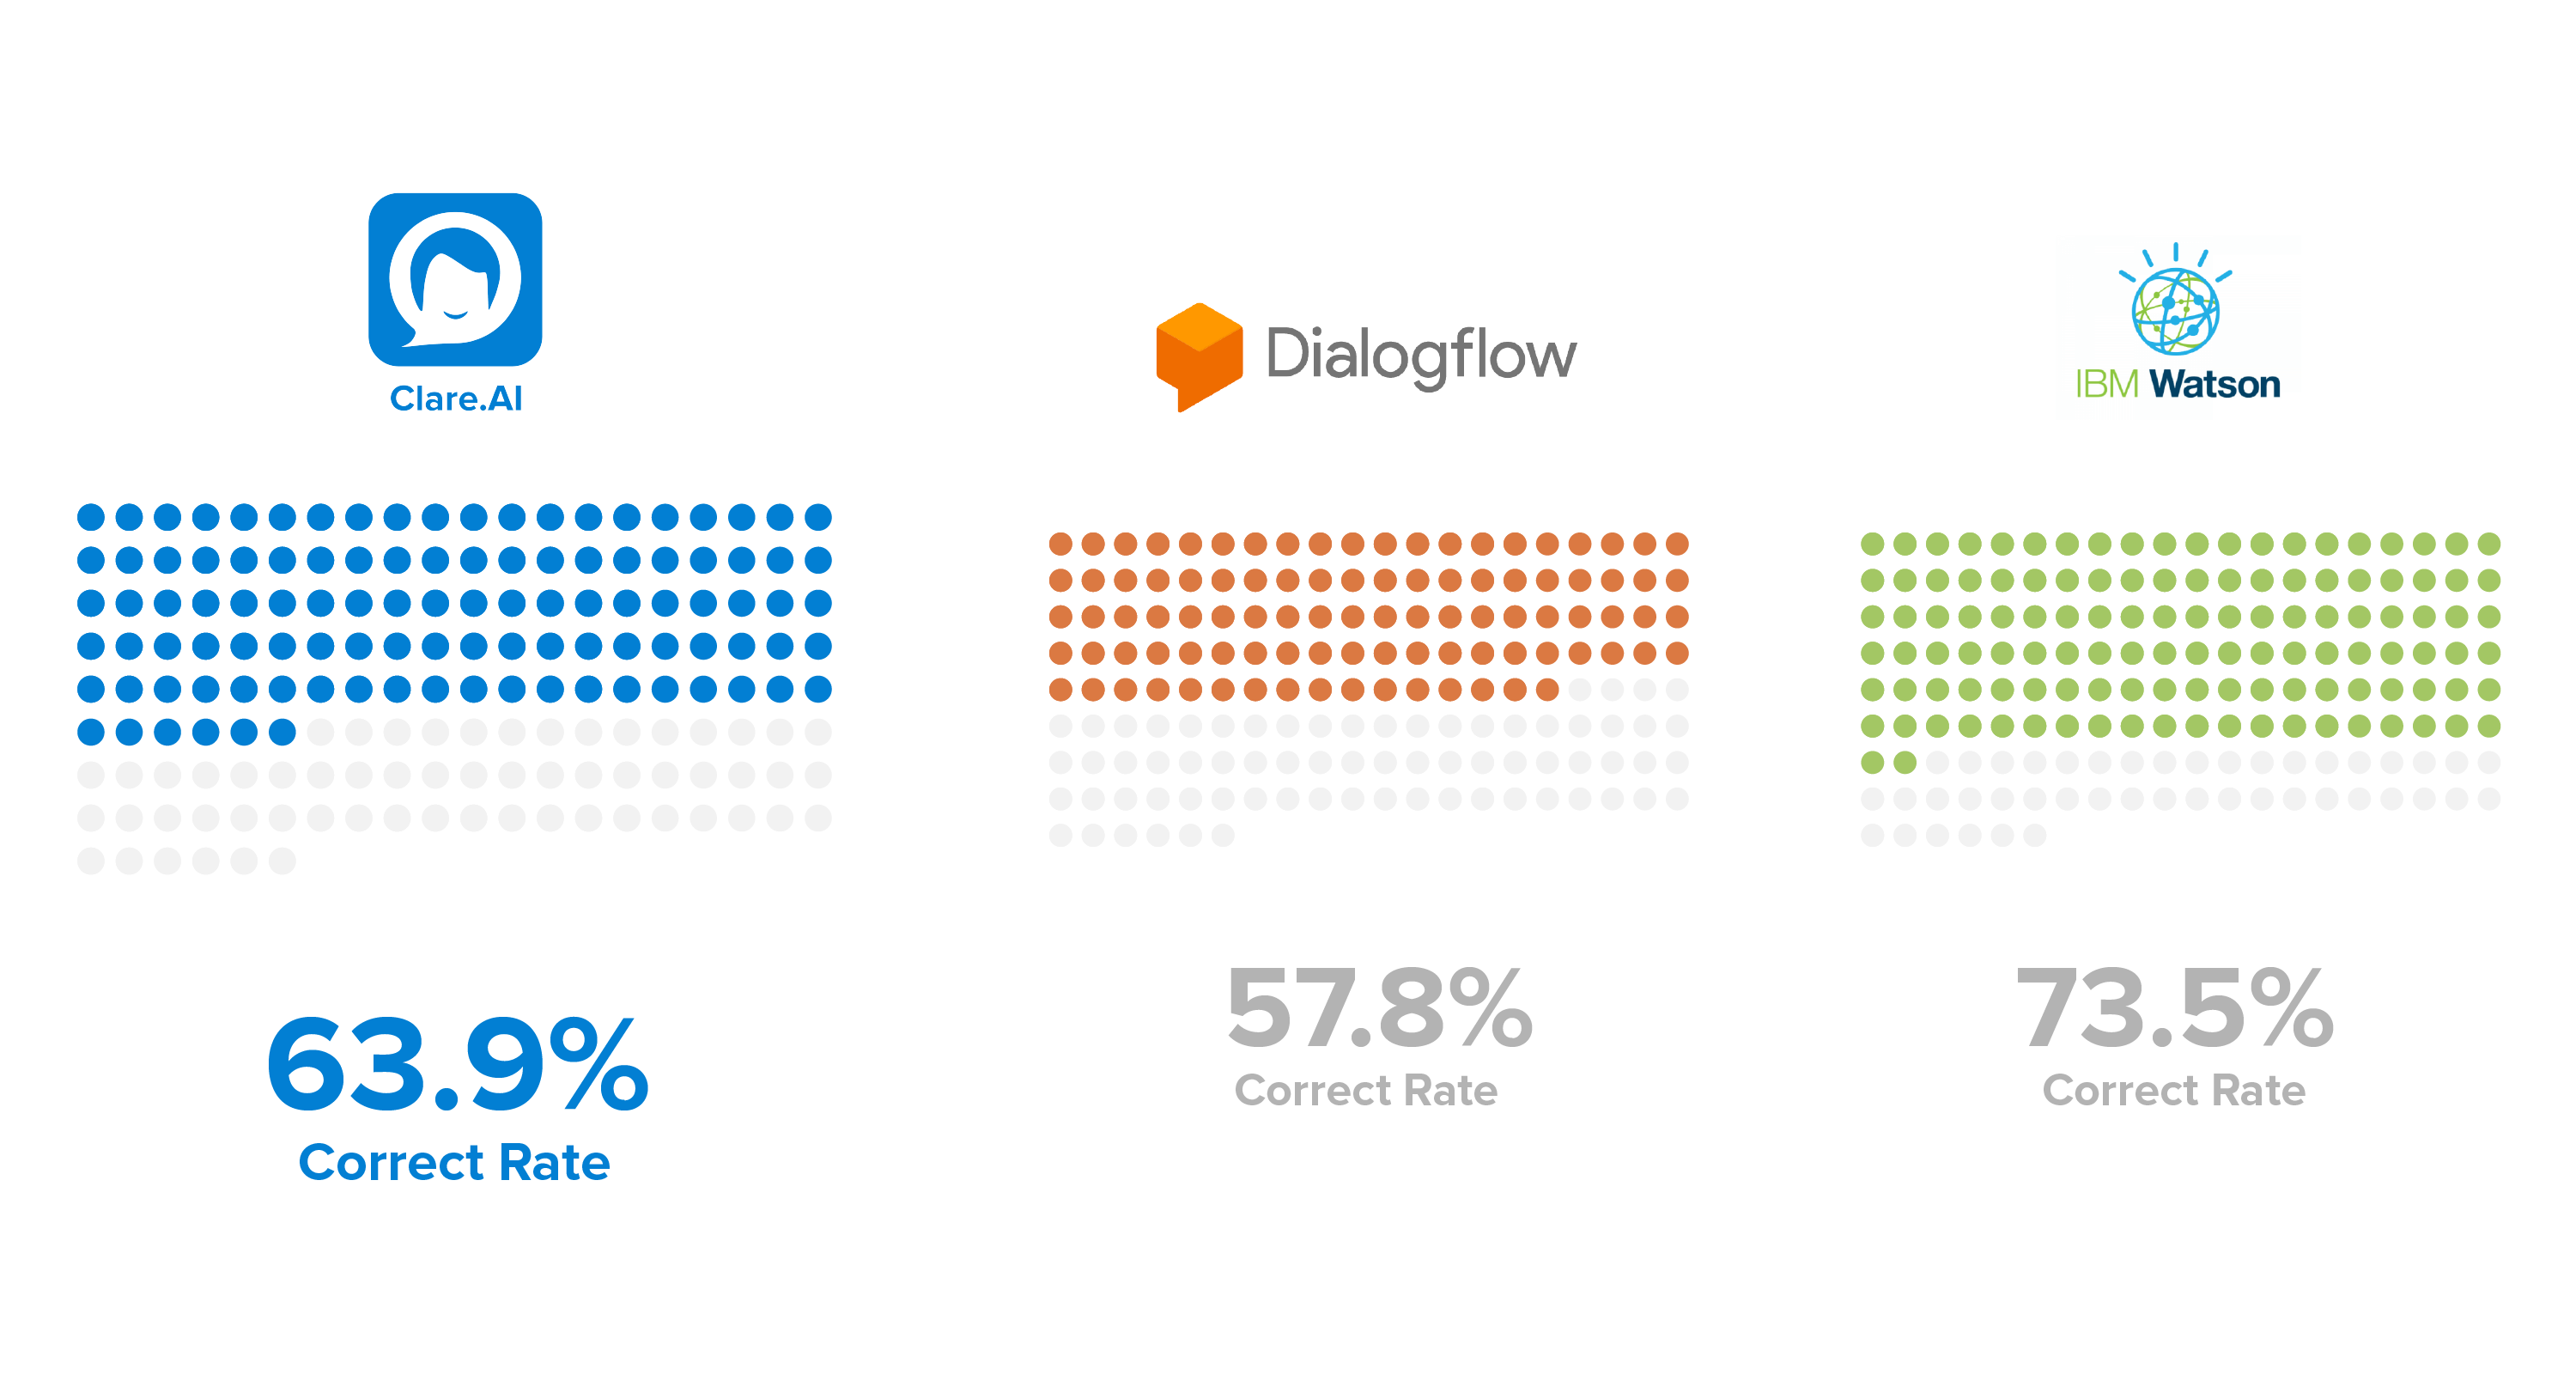 NLU Comparison between Clare AI, IBM Watson, and Dialogflow